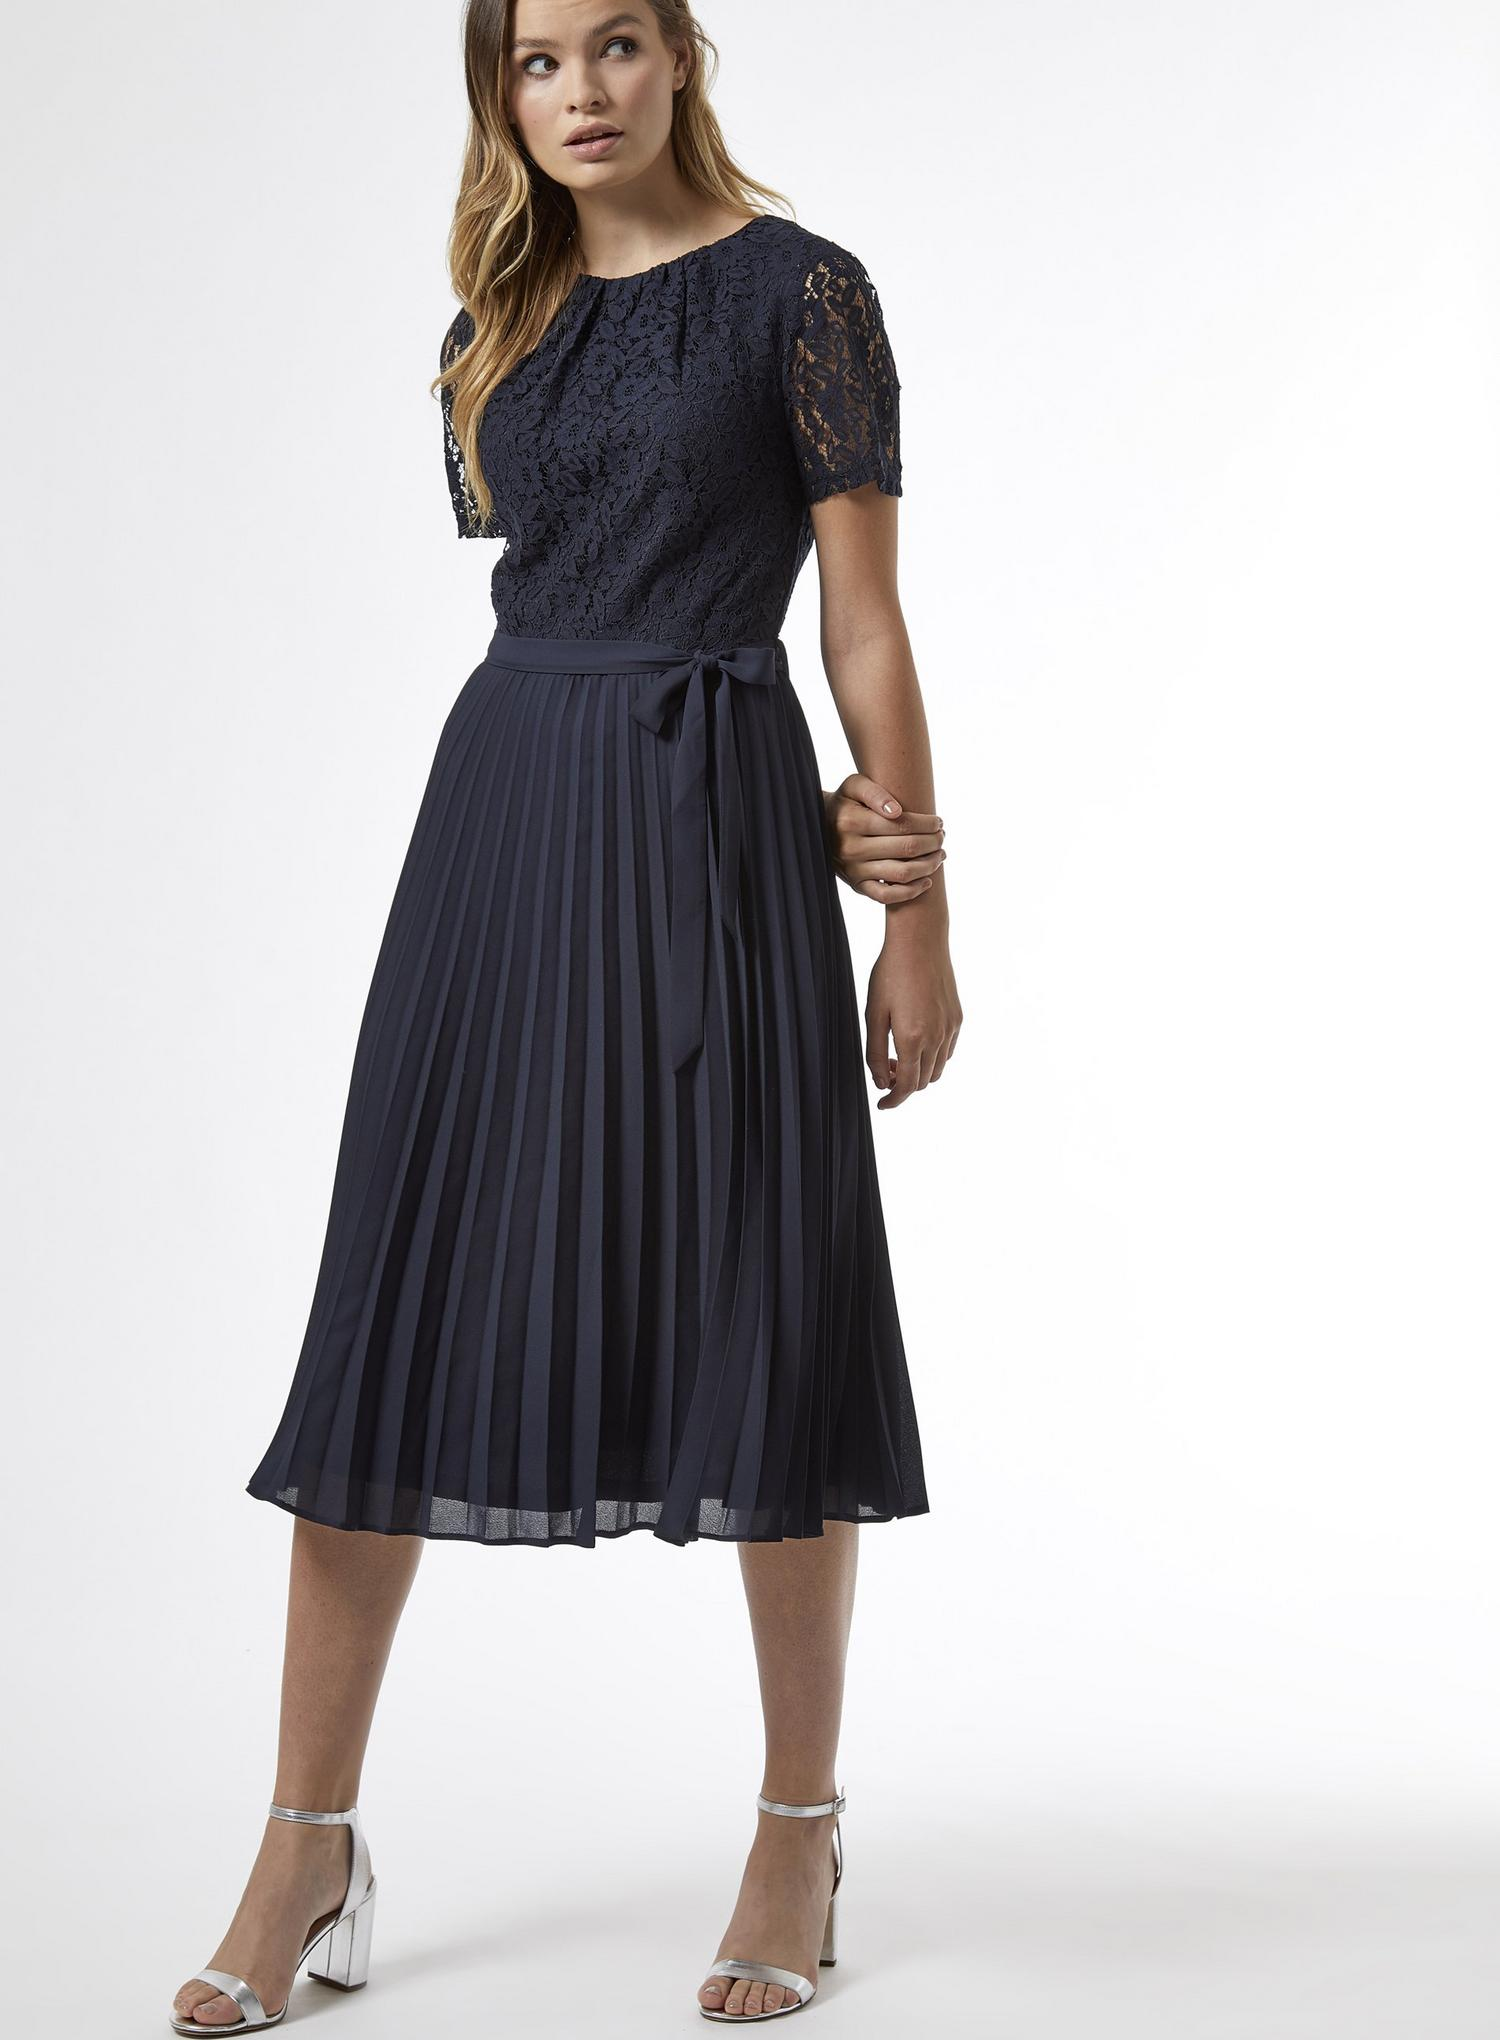 148 Navy Lace Pleated Midi Dress image number 4